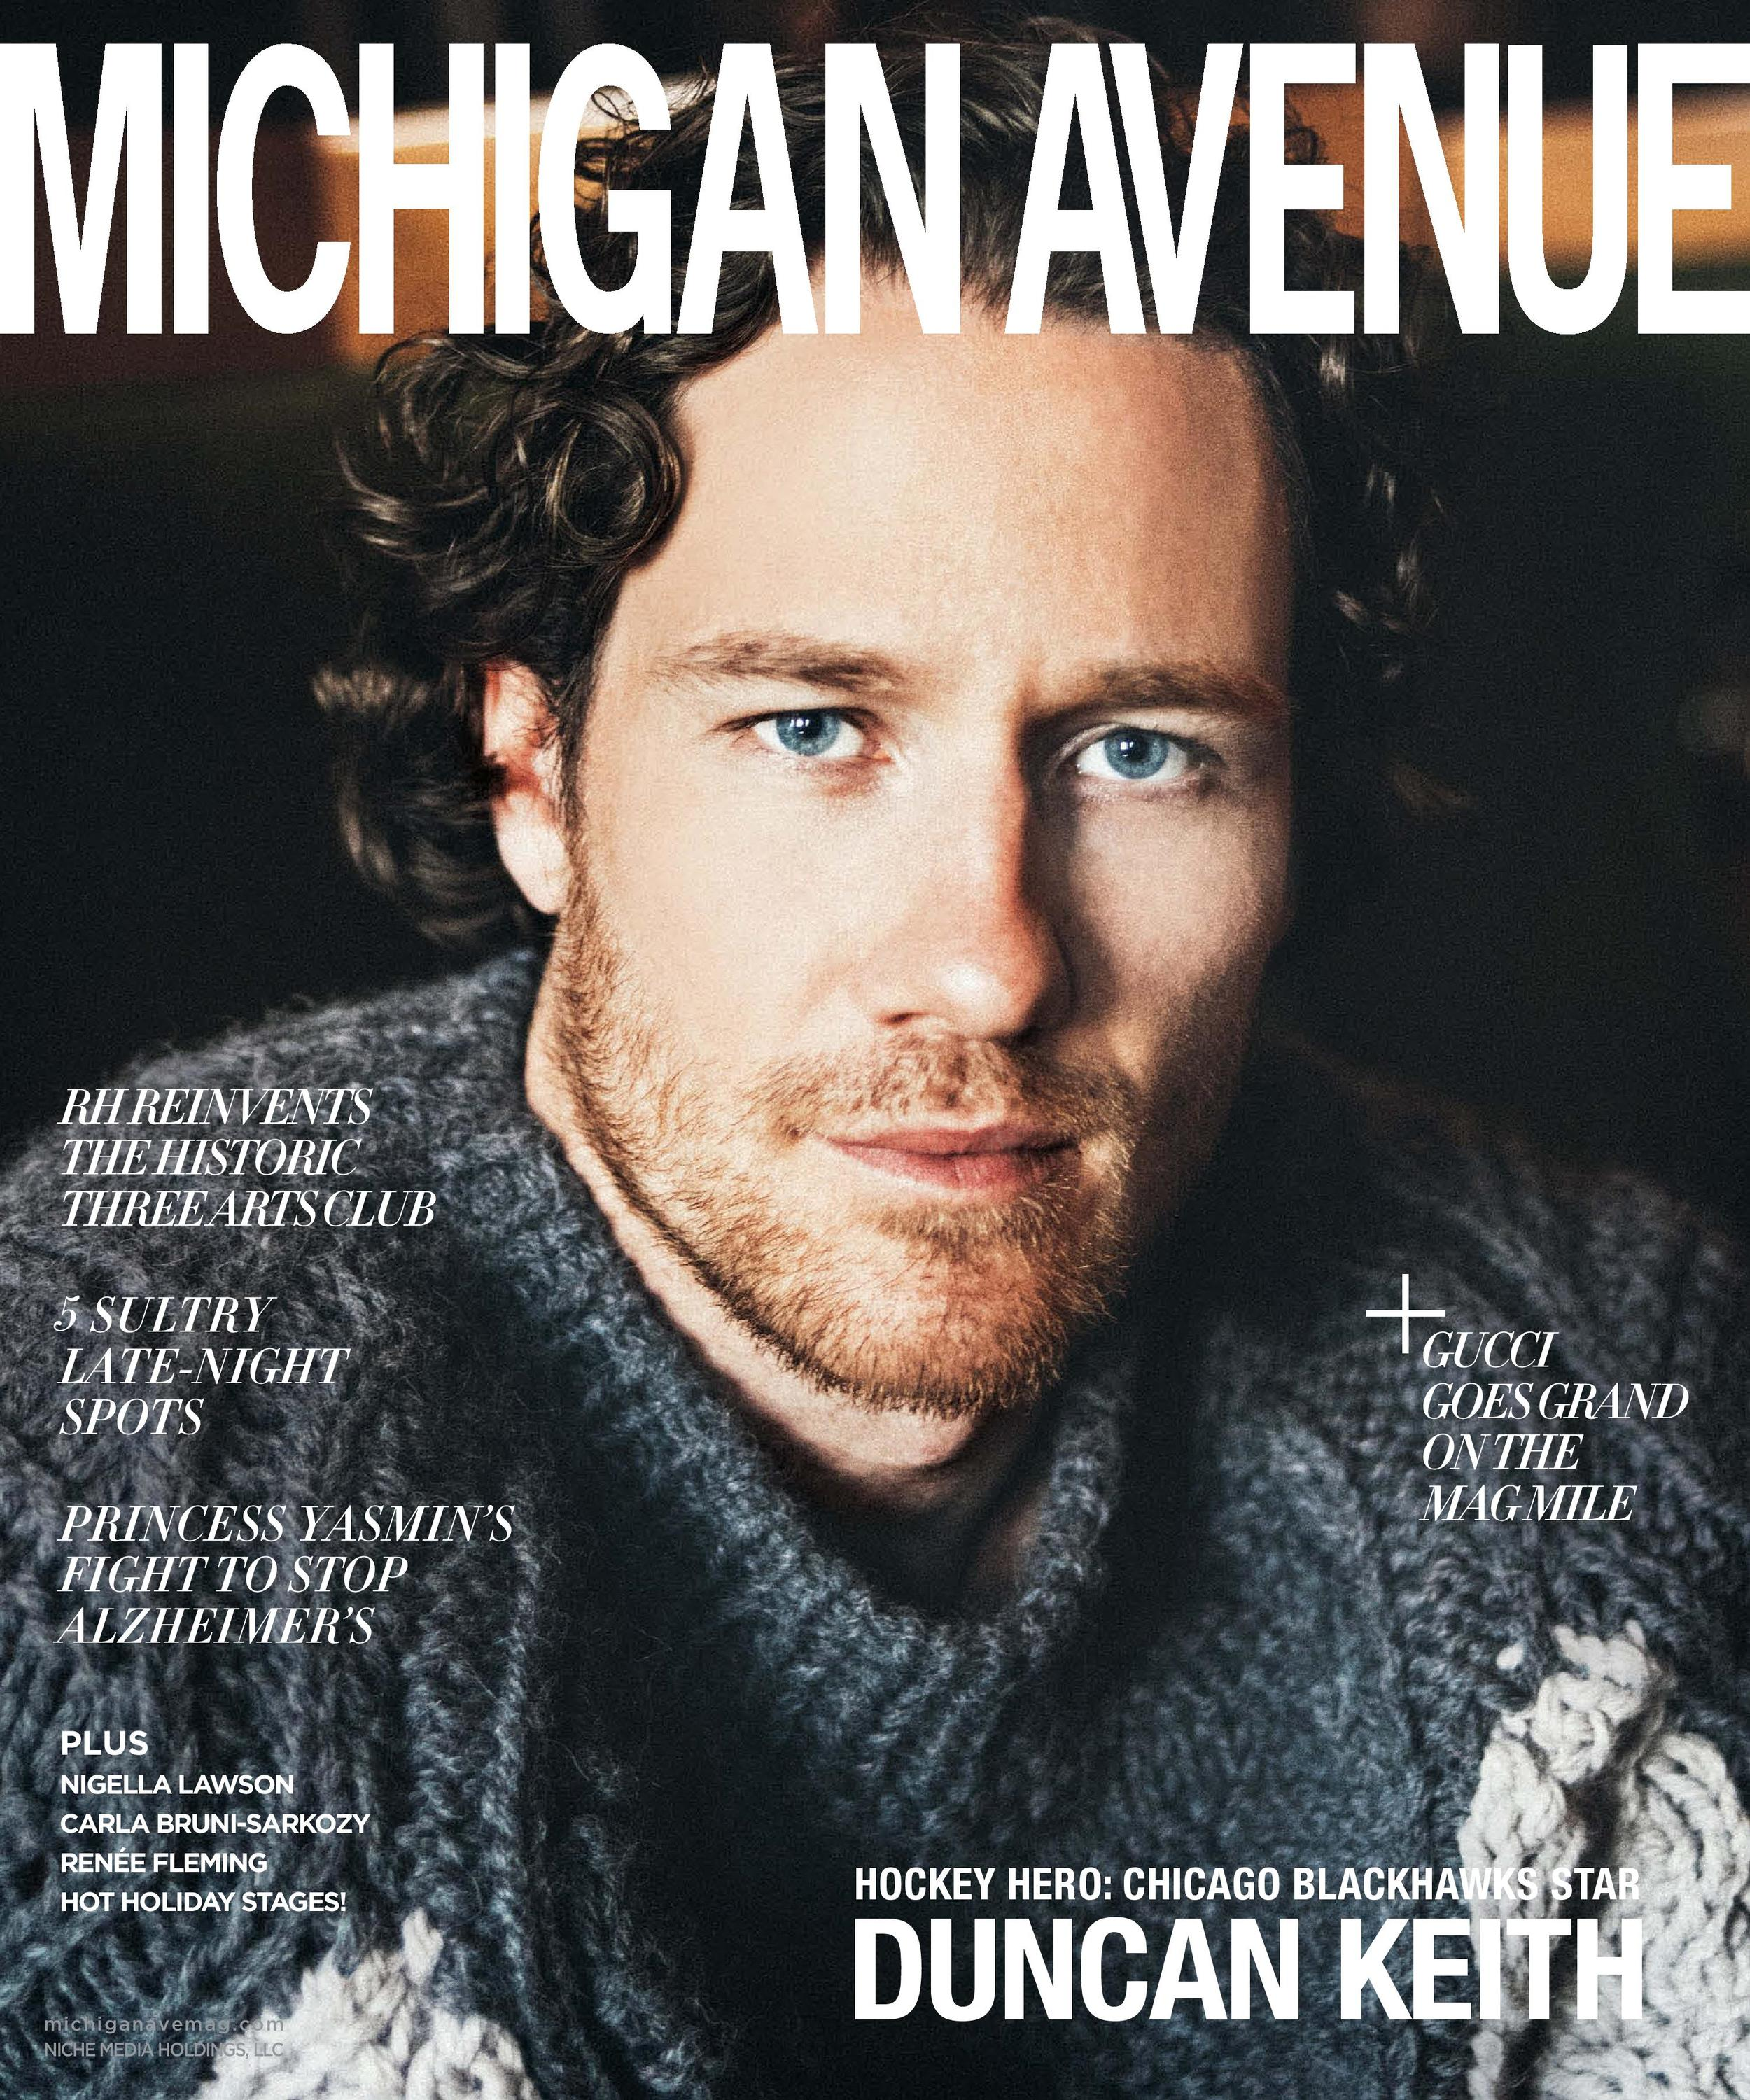 593406-Michigan Avenu_selected-pages-page-001.jpg